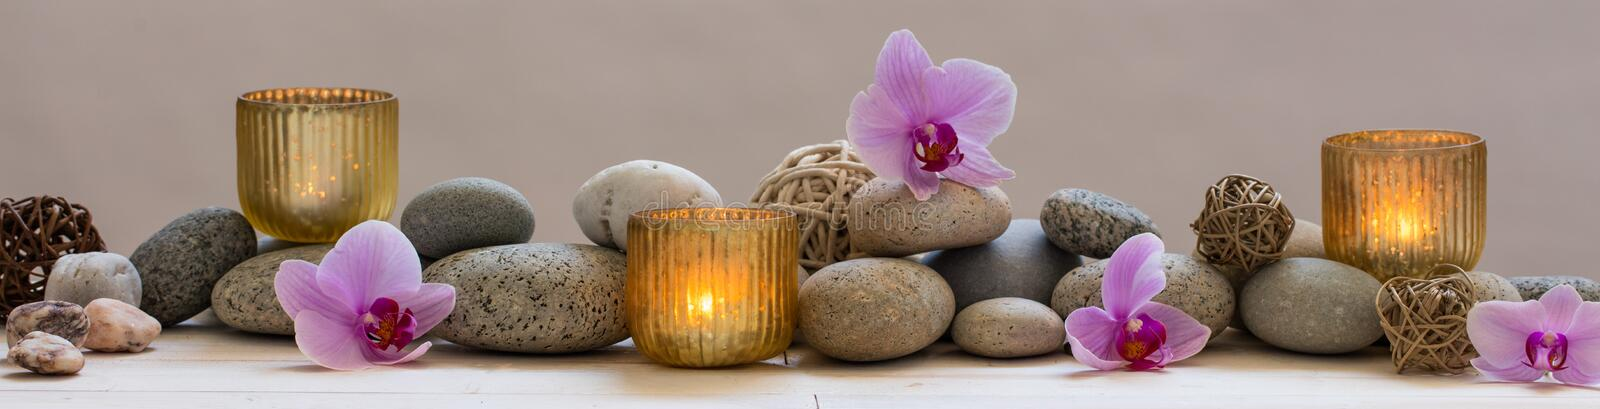 Panoramic still life for harmony in spa, massage or yoga royalty free stock image